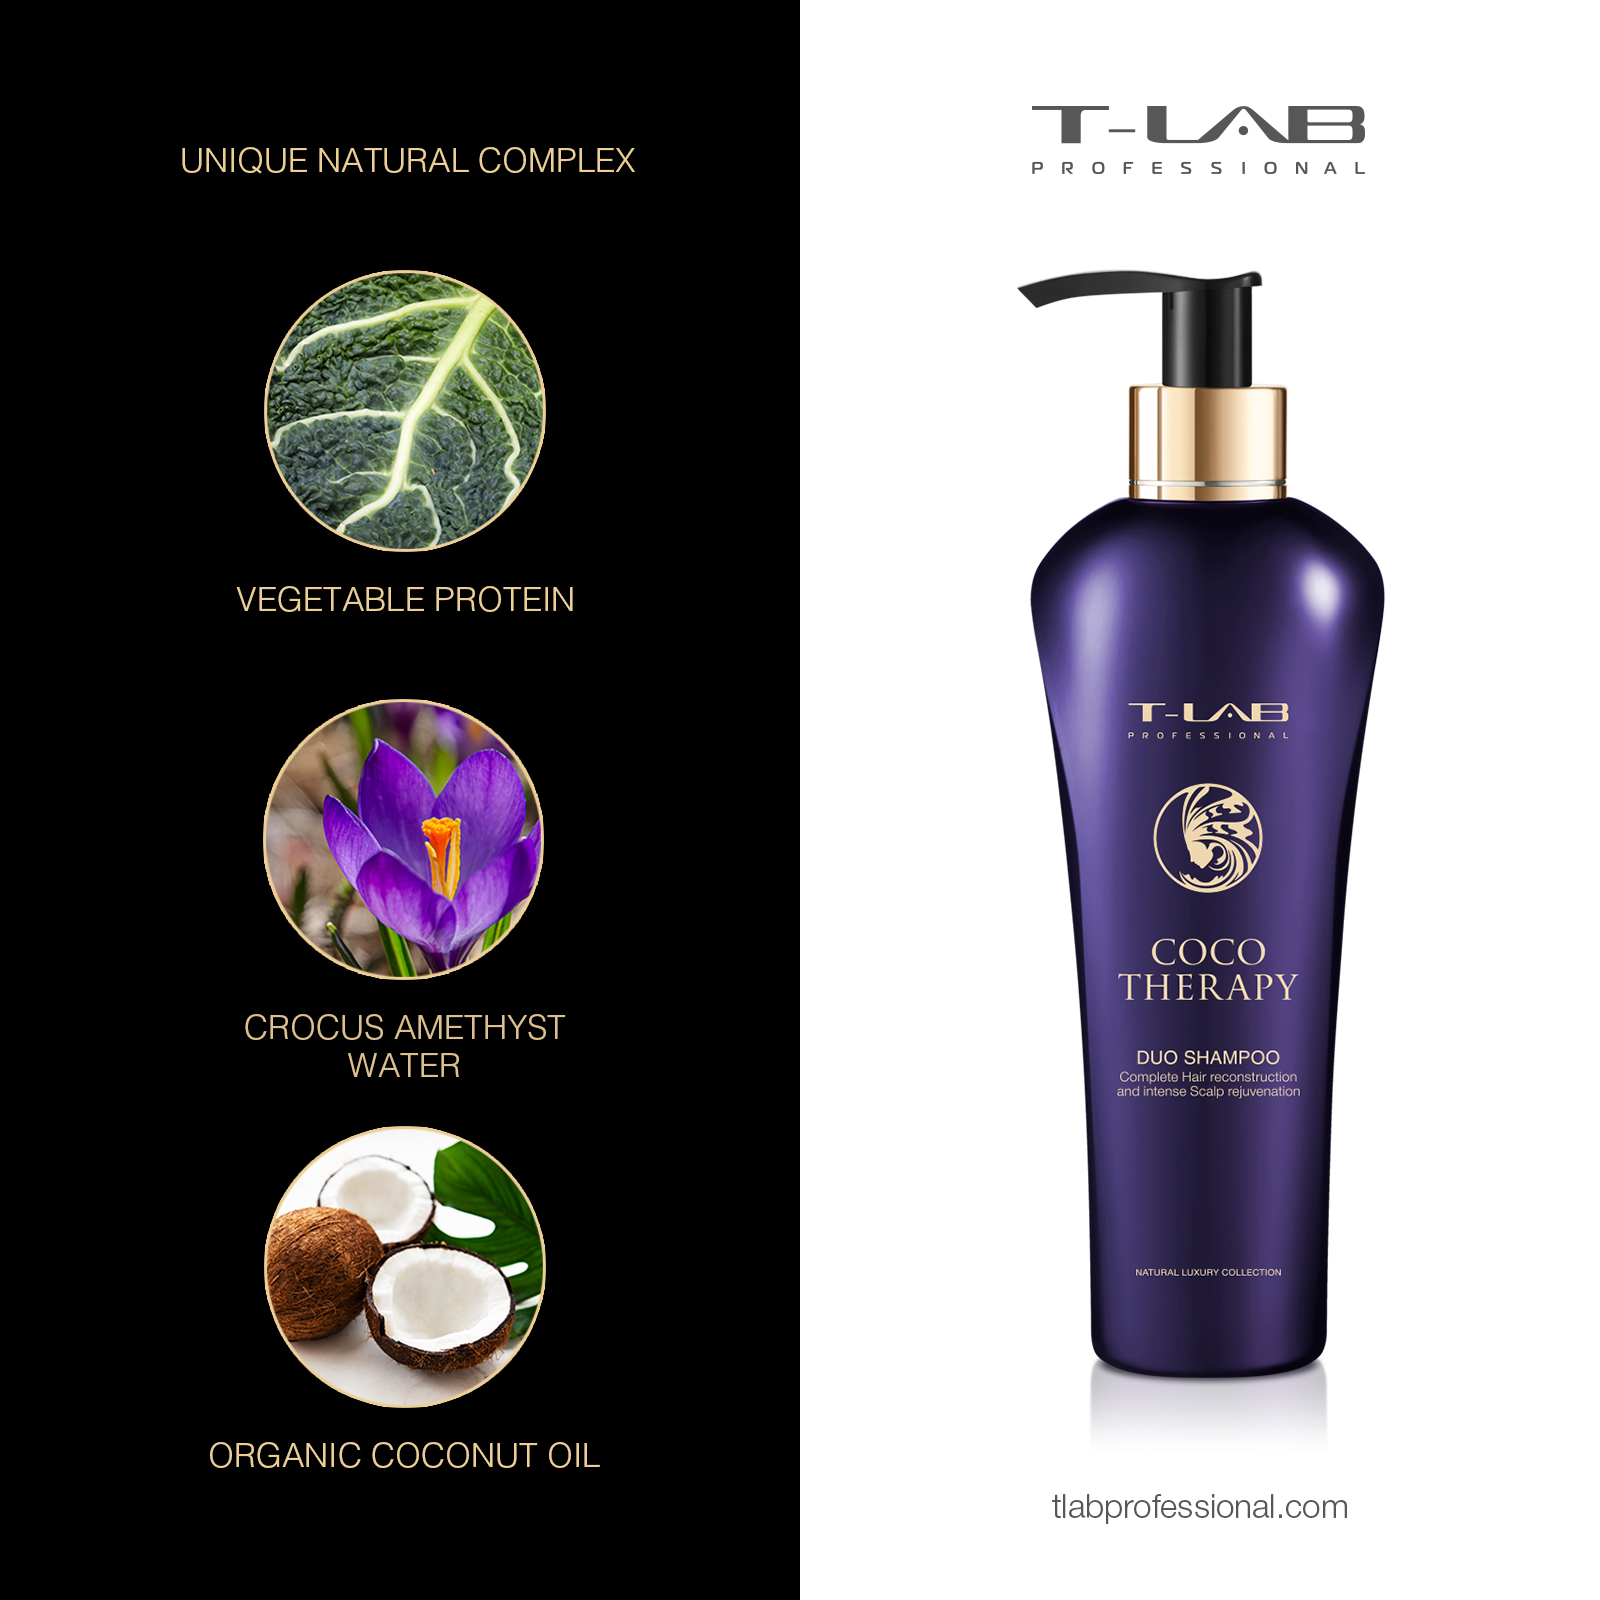 COCO THERAPY DUO SHAMPOO- Crocus Amethyst Water, Vegetable Protein, Organic Coconut Oil